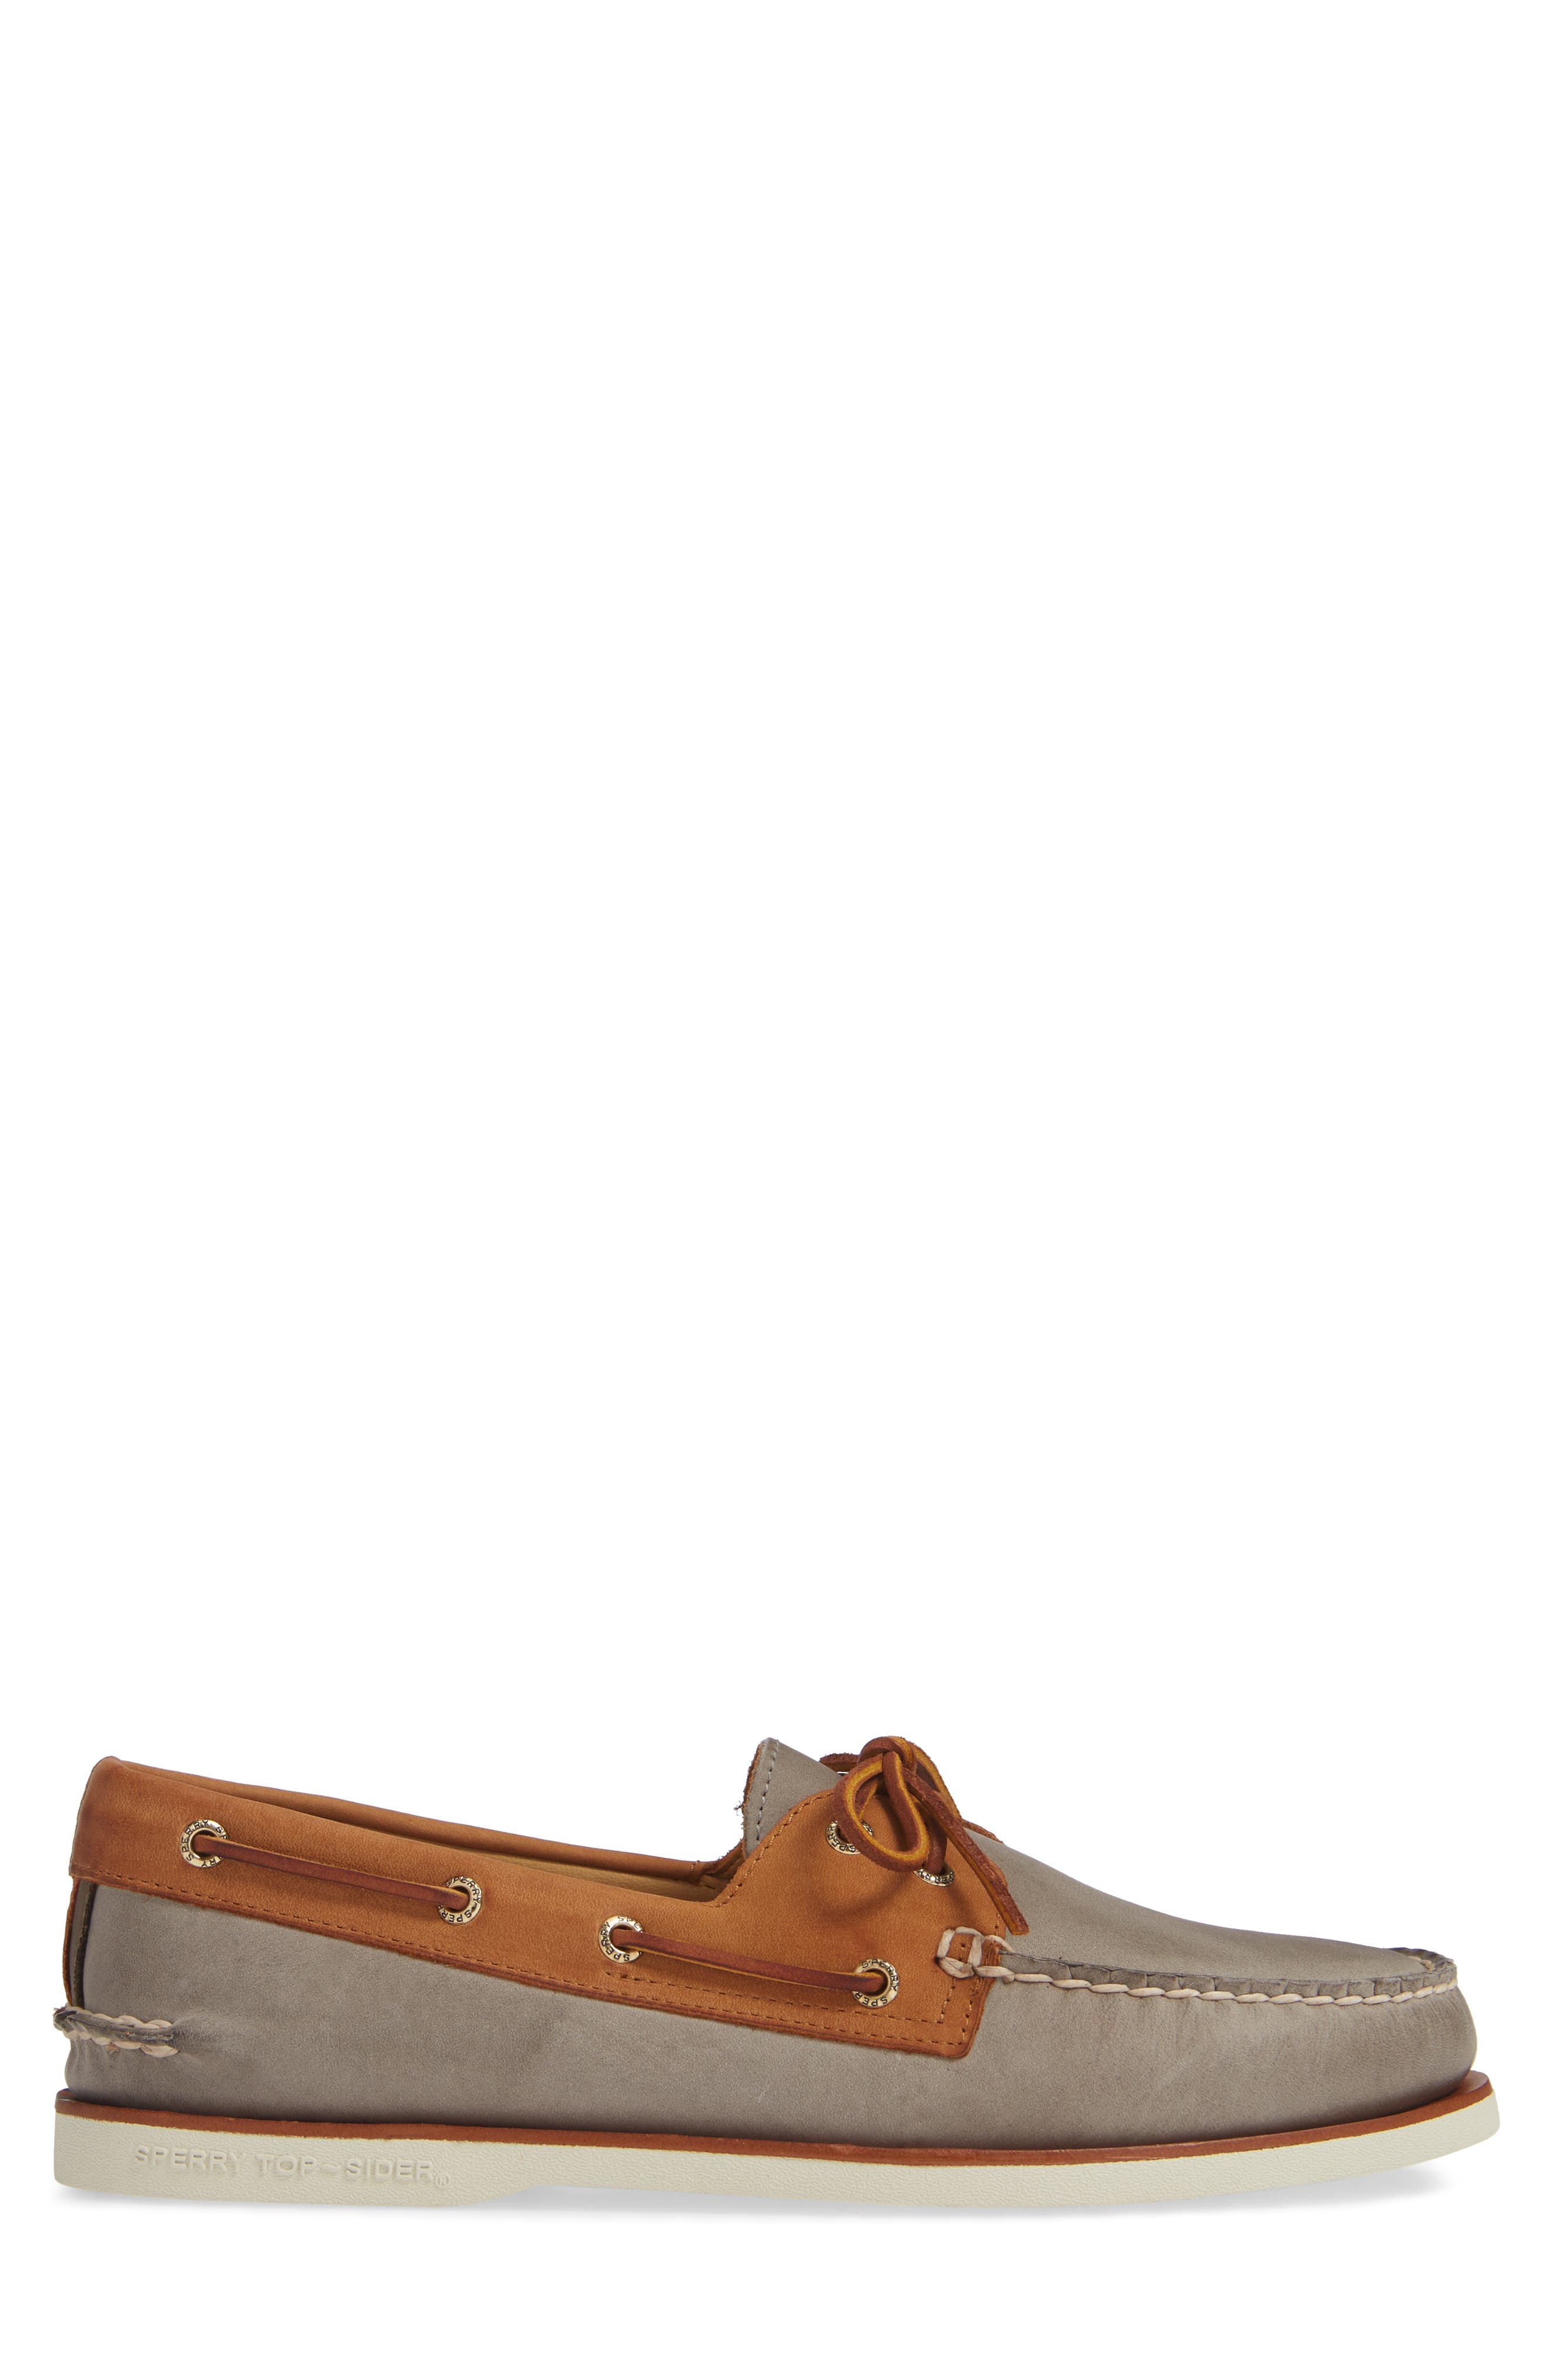 SPERRY, Gold Cup AO Boat Shoe, Alternate thumbnail 3, color, 020